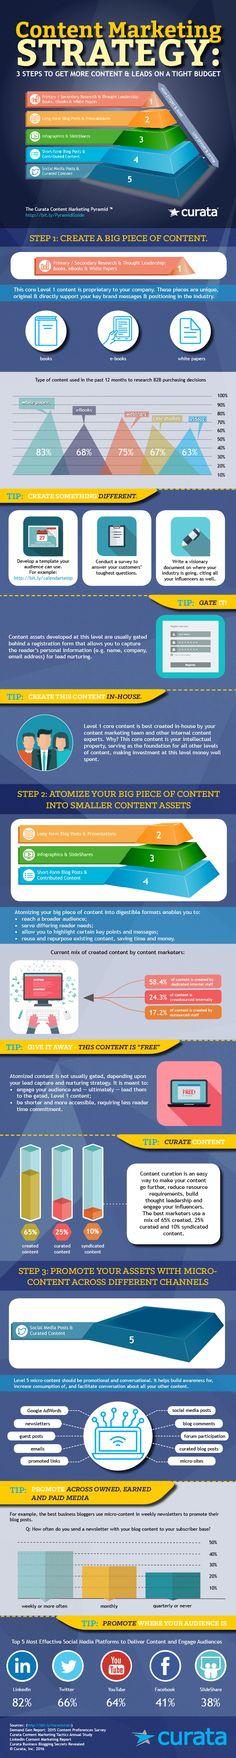 The Ultimate Content Marketing Strategy